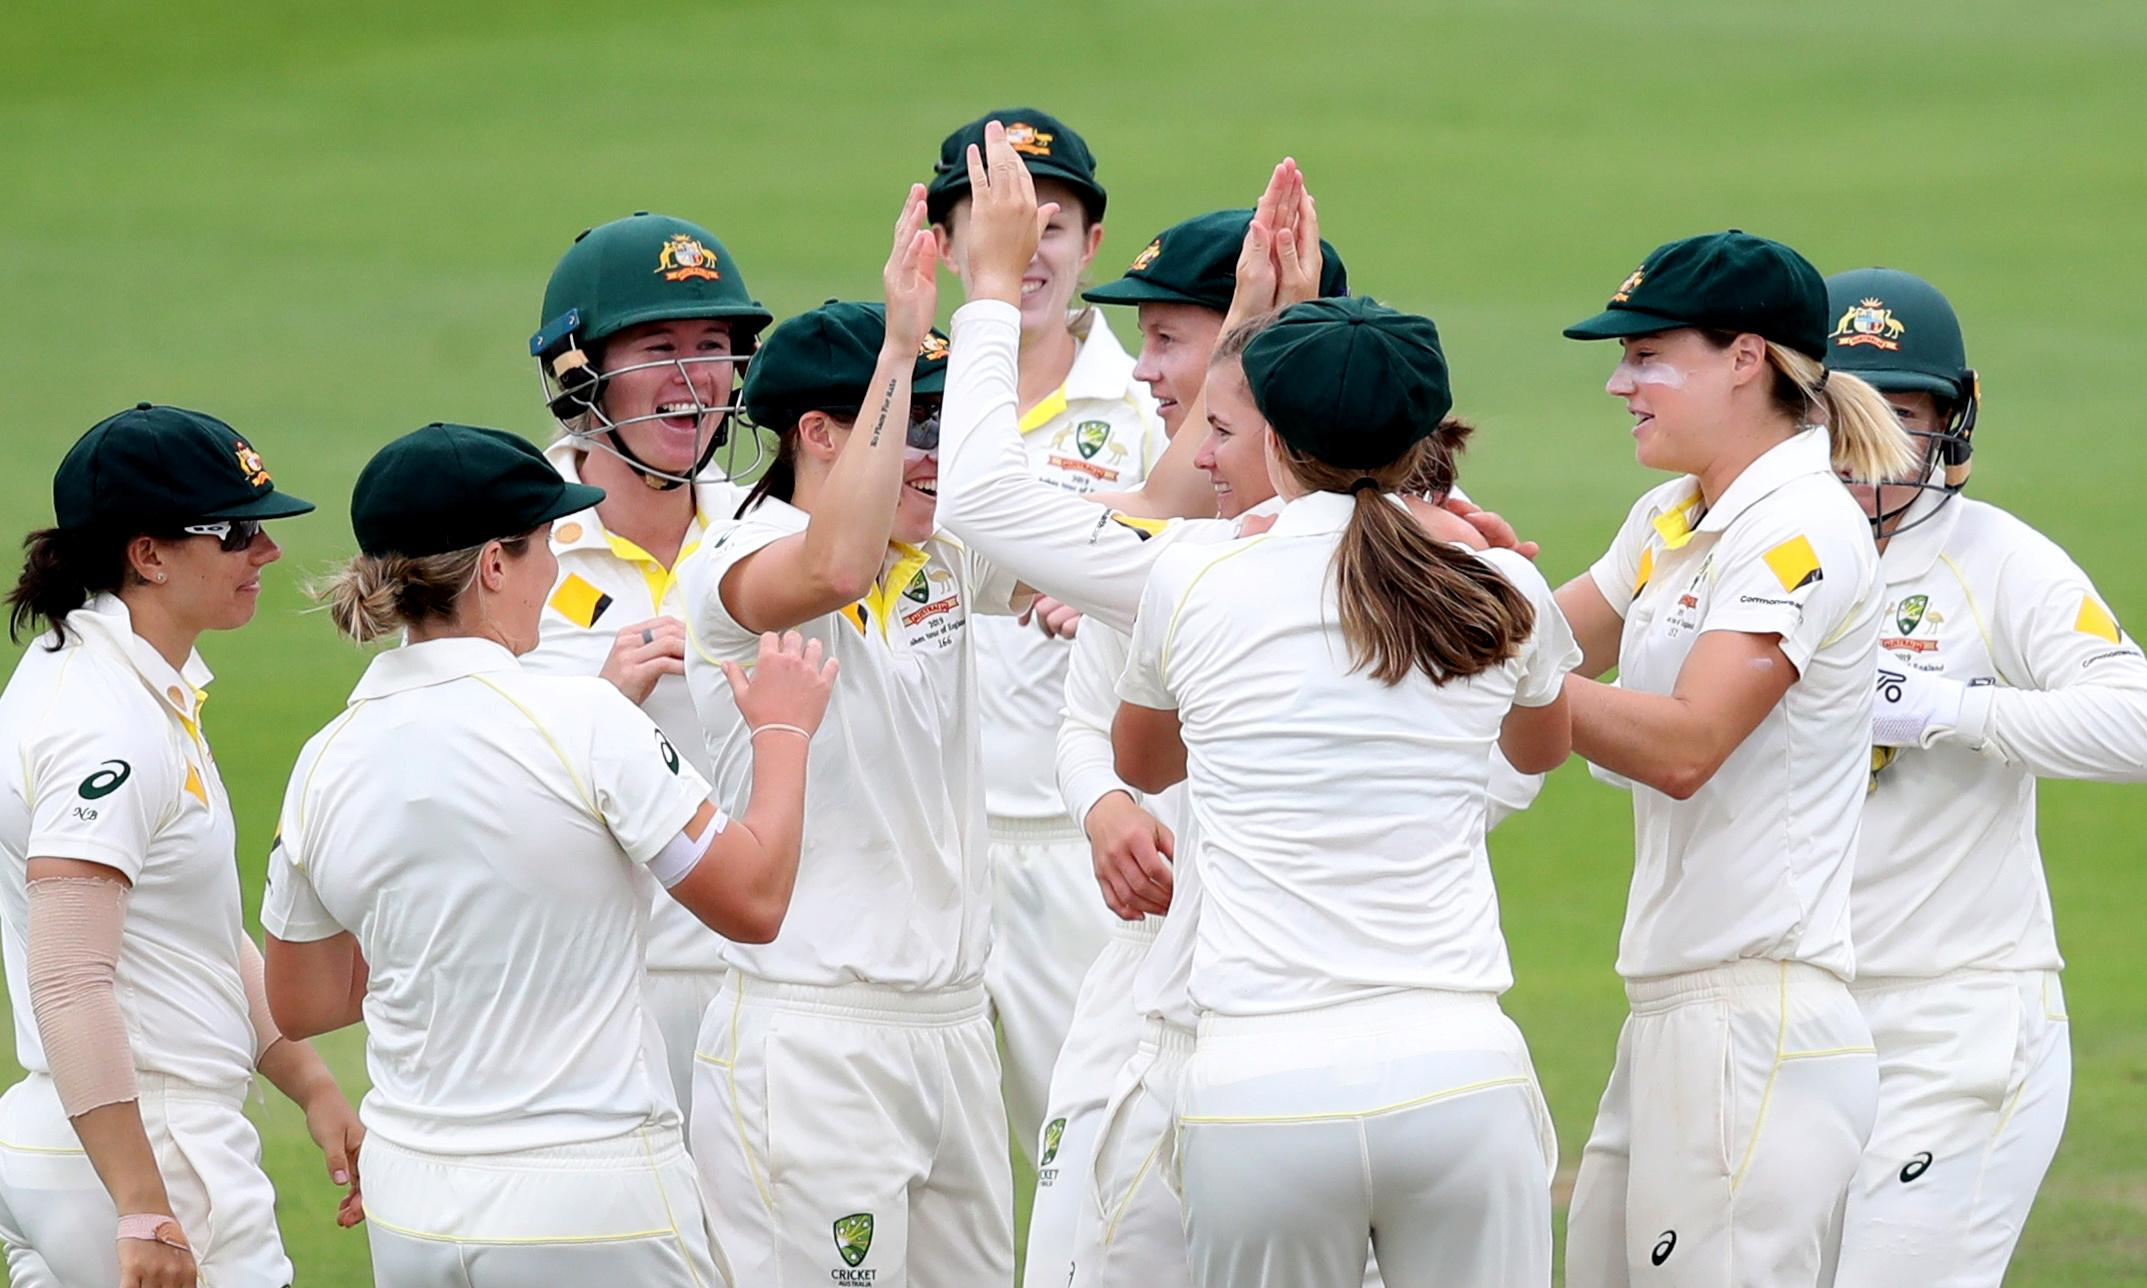 'No let up': unfinished business for Australia despite retaining Women's Ashes